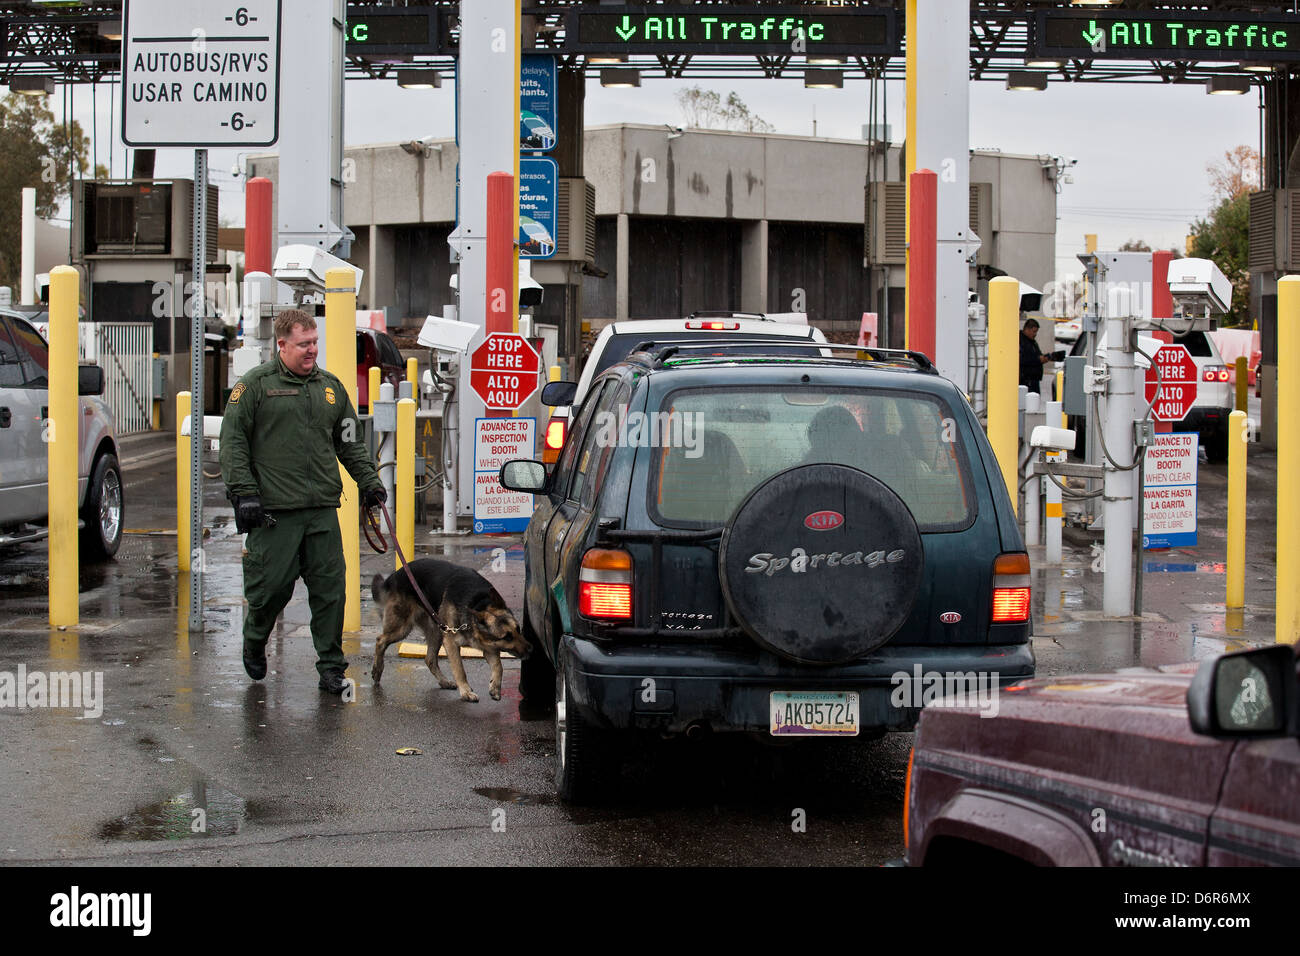 us customs and border protection Learn about working at us customs and border protection join linkedin today for free see who you know at us customs and border protection, leverage your professional network, and get hired.